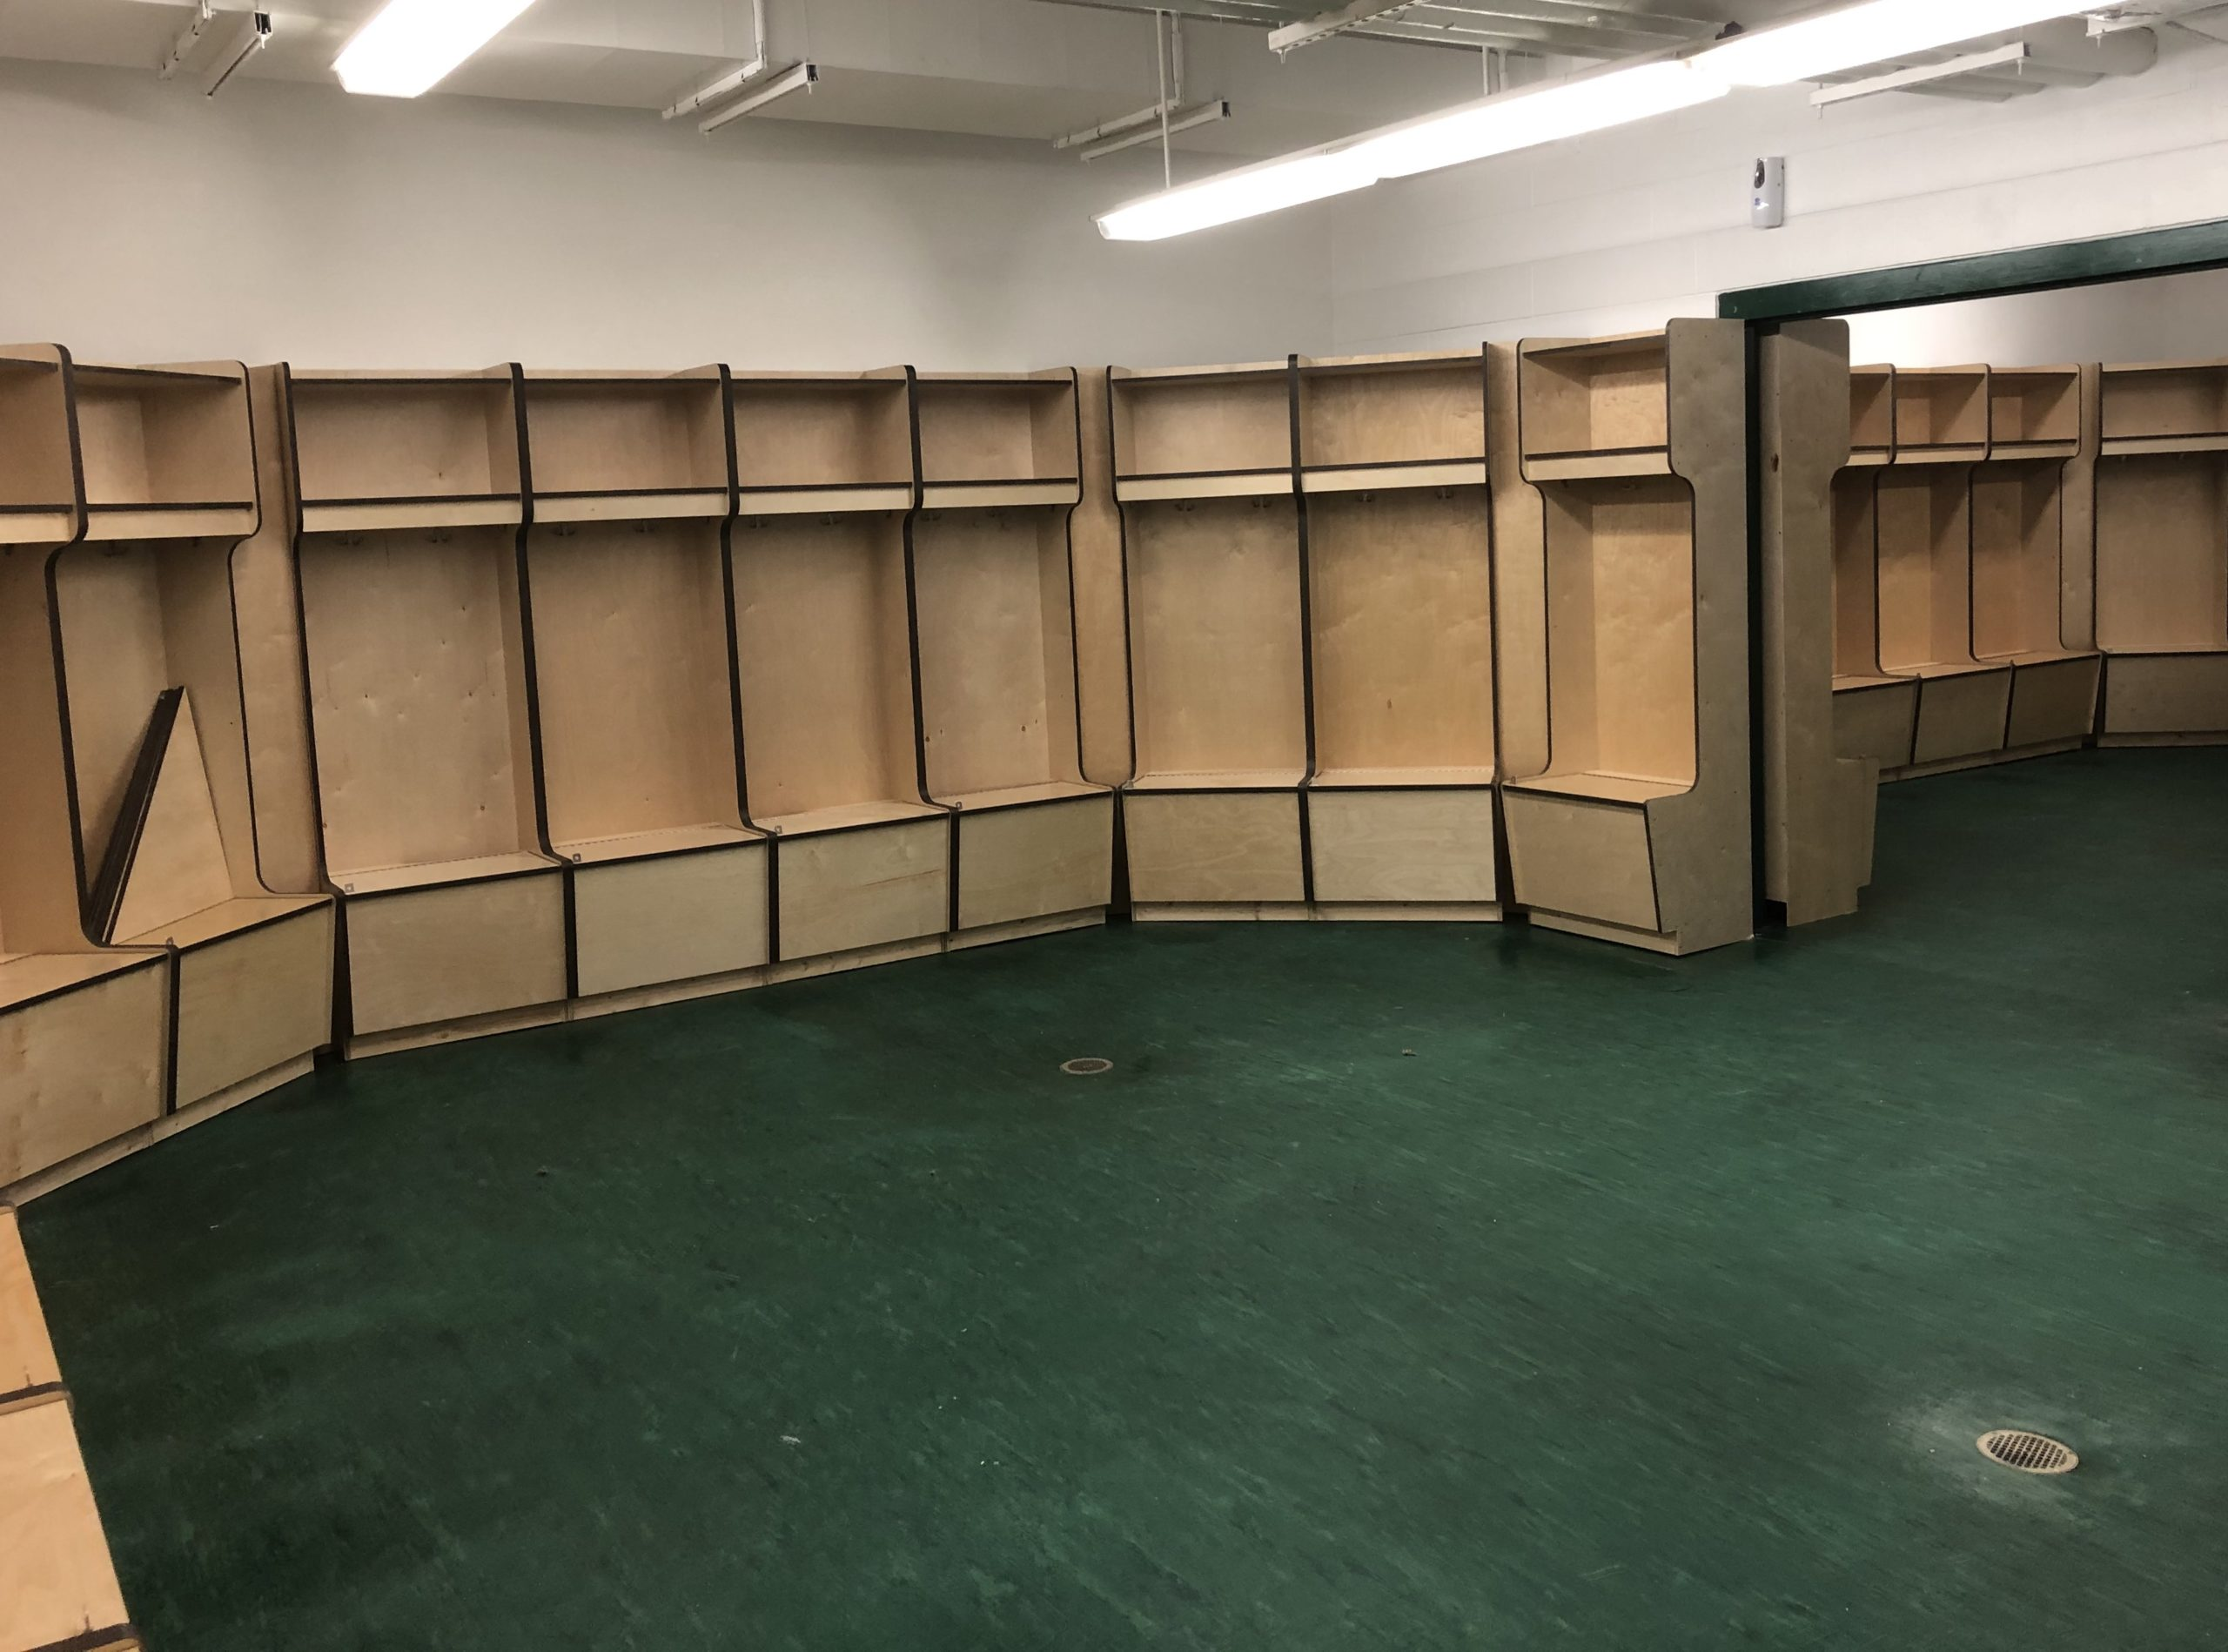 Plywood open front hockey lockers